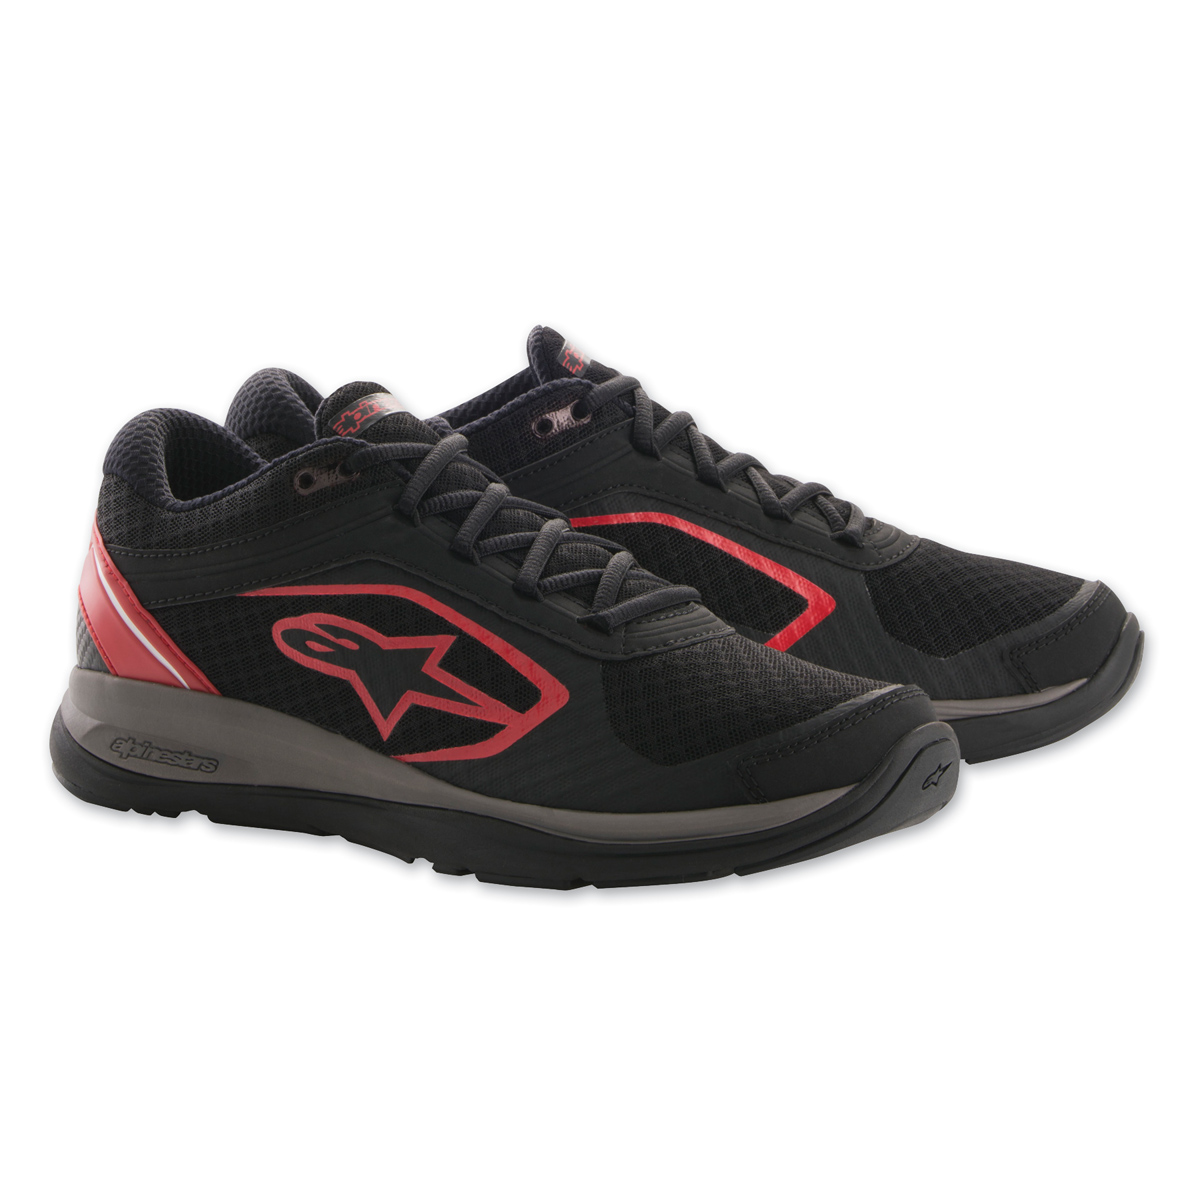 Alpinestars Men's Alloy Black/Red Shoes